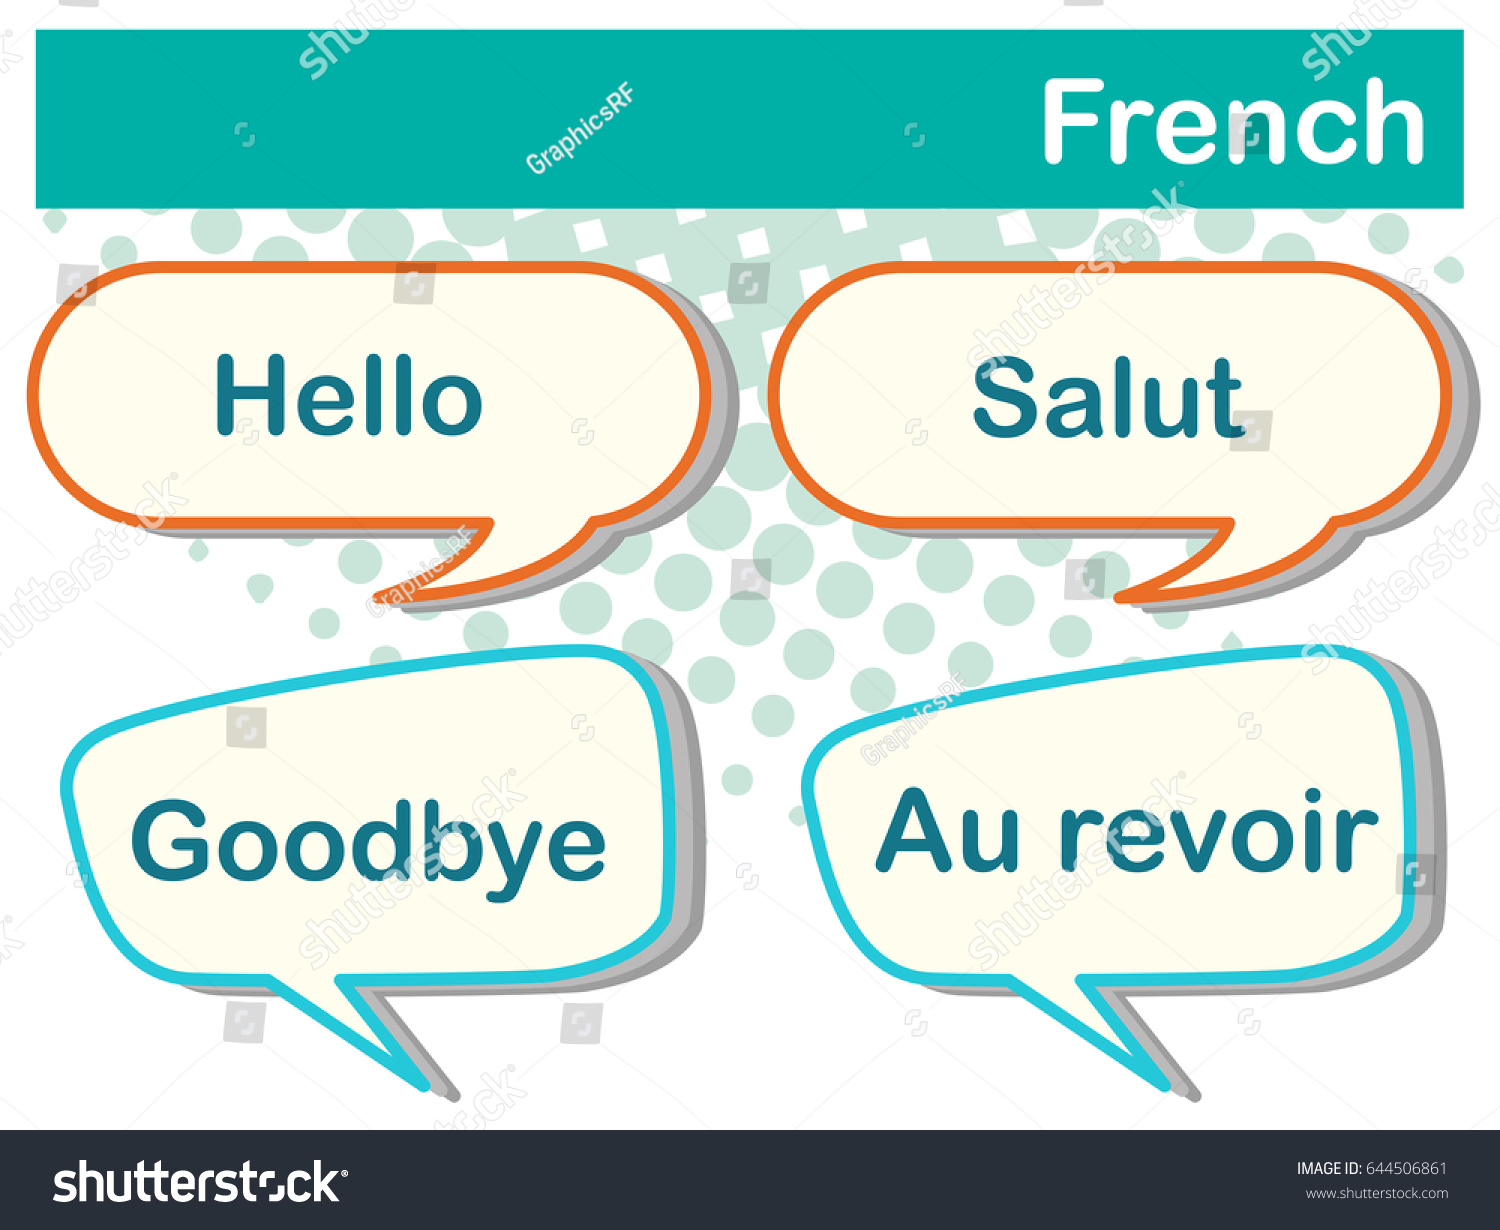 Different Expressions French Language Illustration Stock Vector